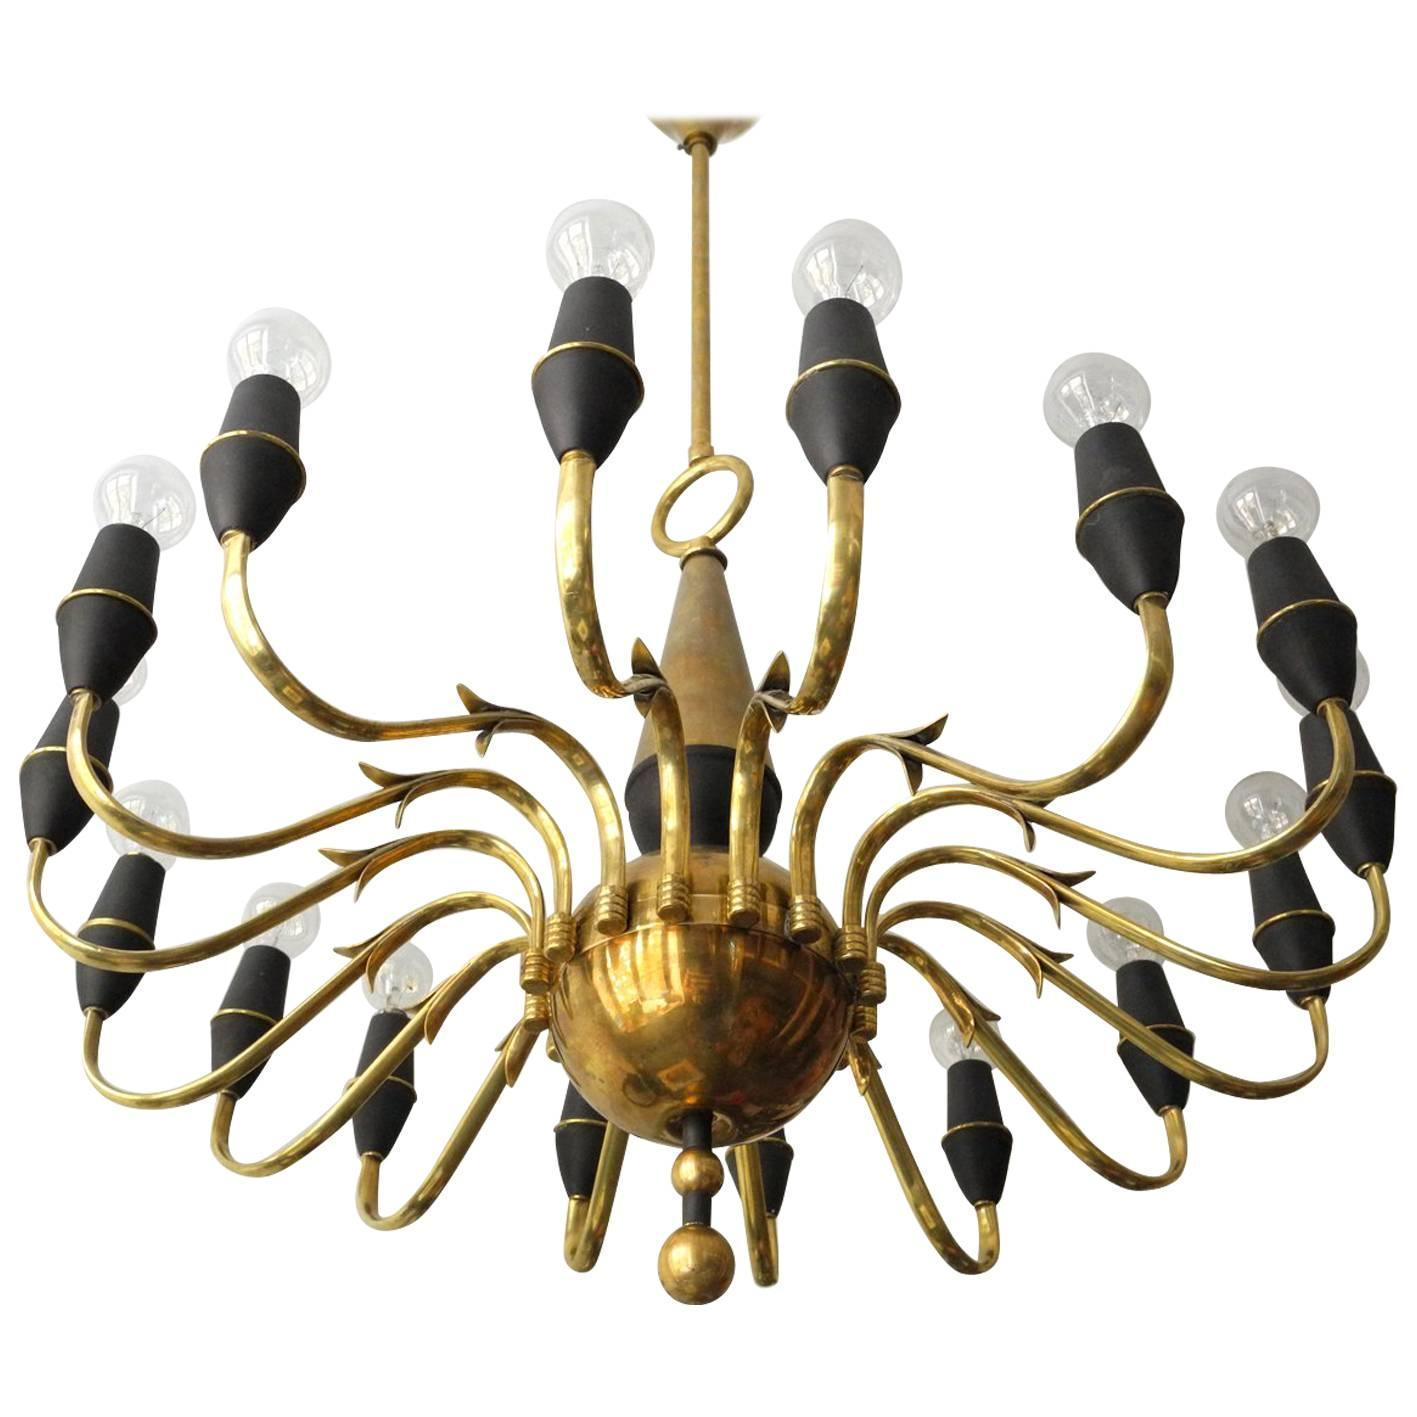 Mid Century Modern Brass Chandelier With 16 Sockets Made In Italy Vinterior